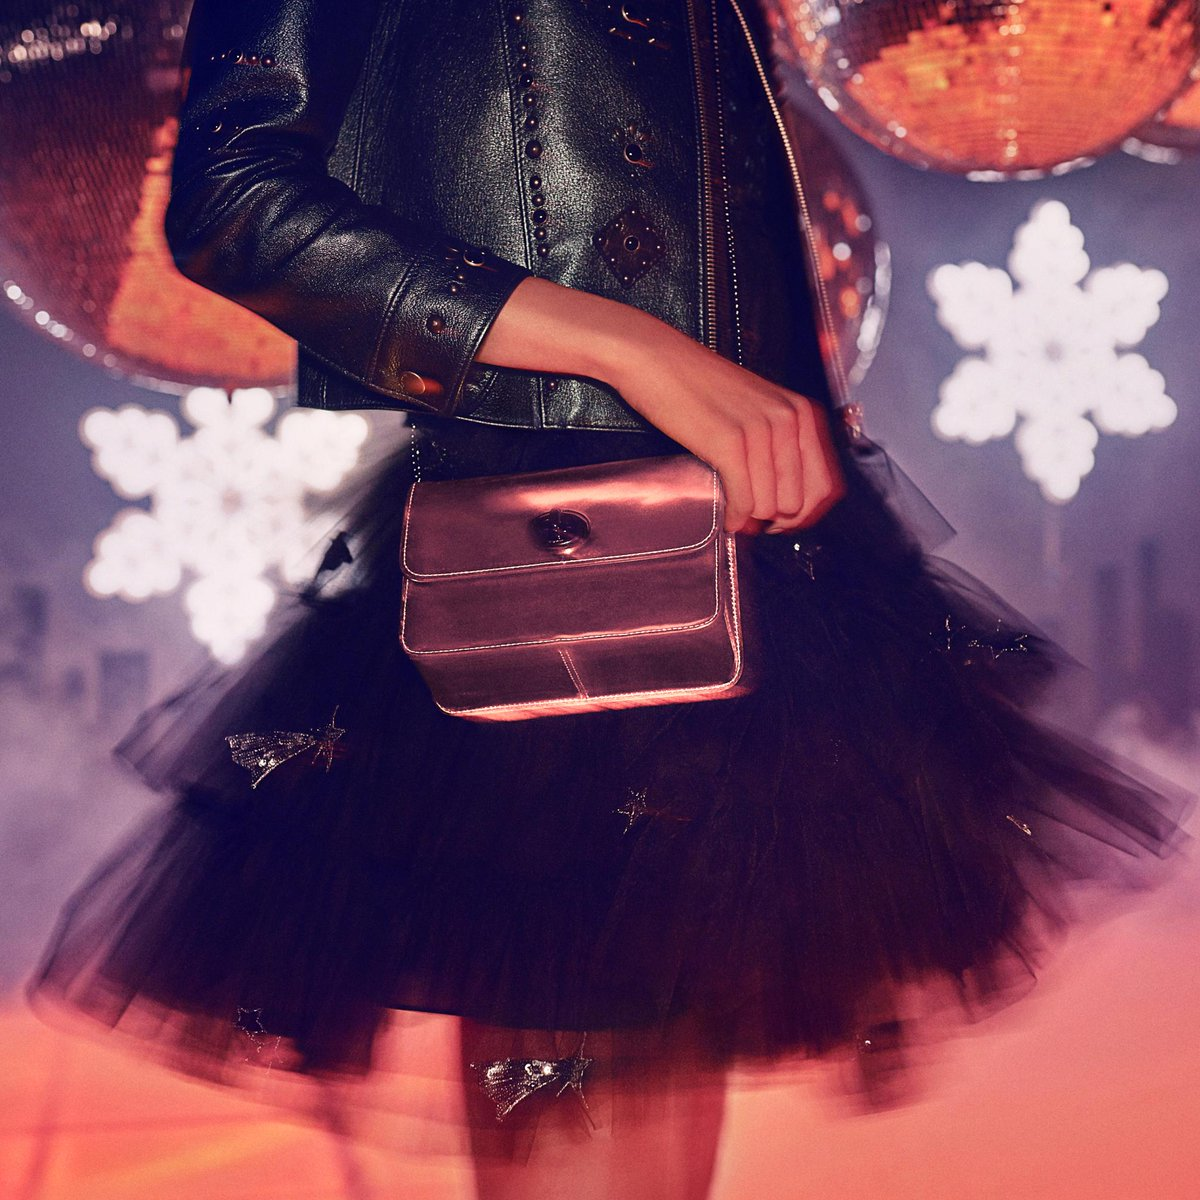 Because you create your own magic. #BringOnTheJoy #CoachGifts #CoachNY https://t.co/mgfihsVPCE